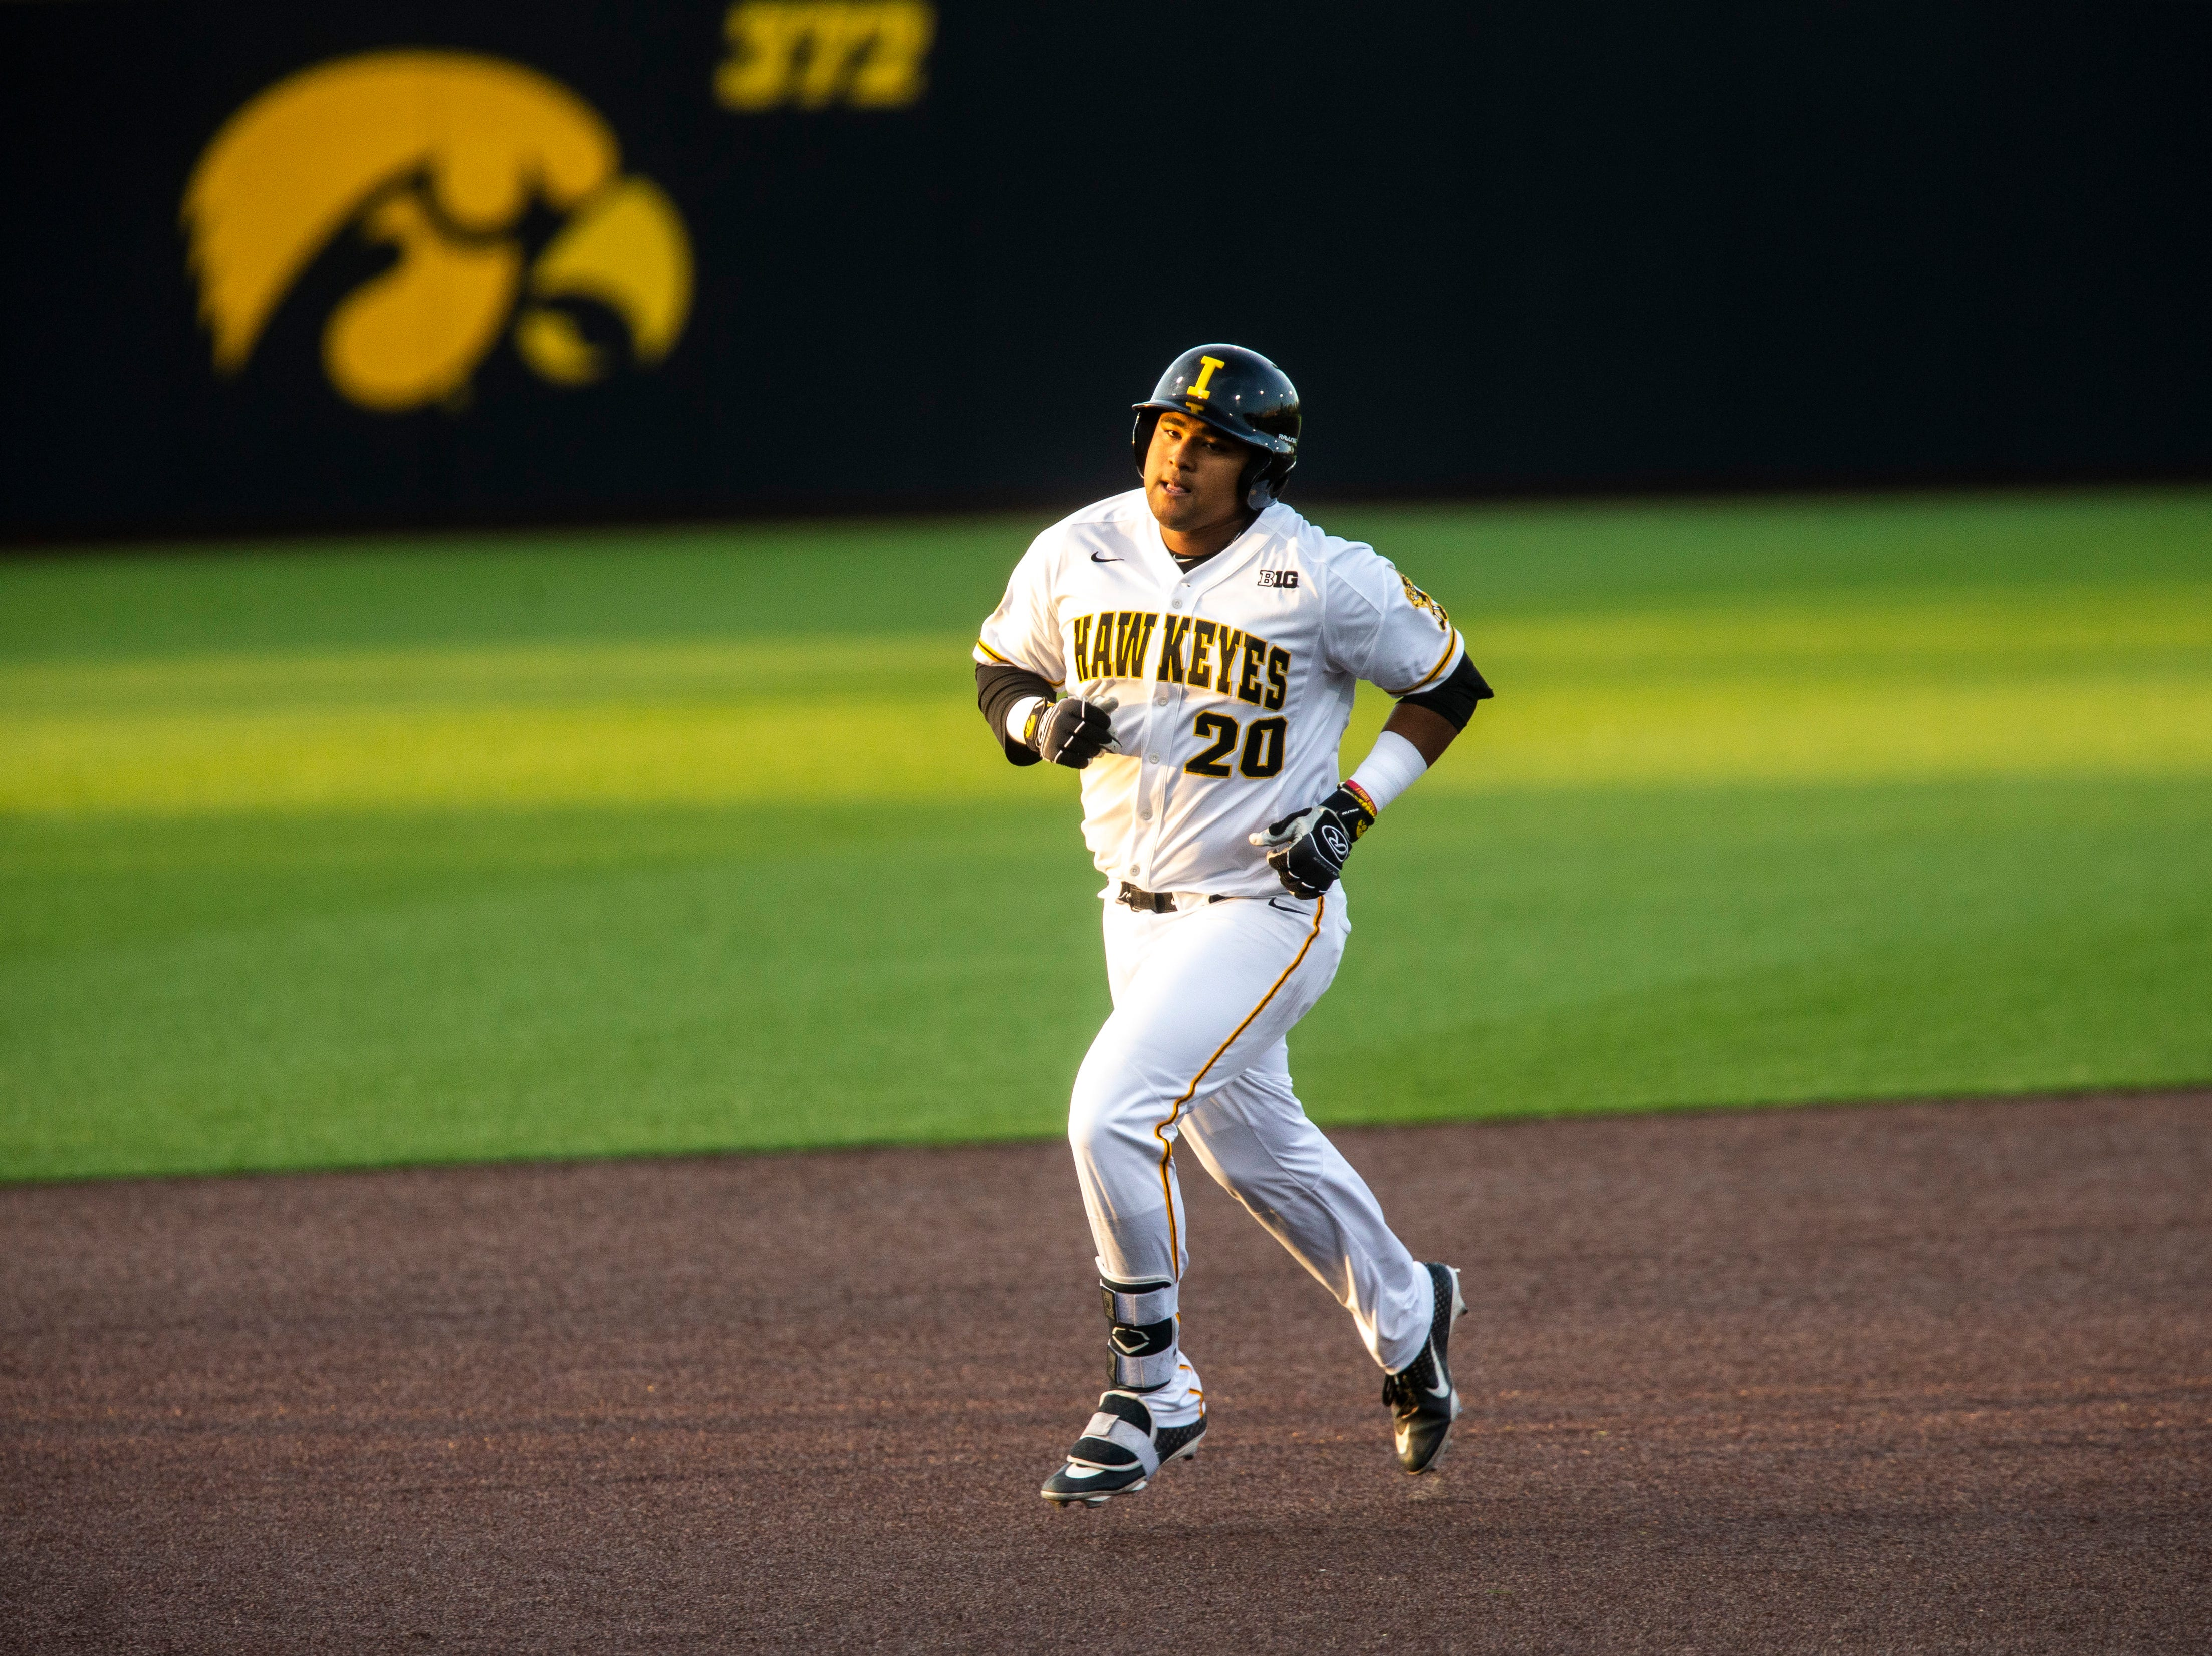 Iowa infielder Izaya Fullard (20) rounds second base after hitting a home run during NCAA non conference baseball game, Friday, May 3, 2019, at Duane Banks Field in Iowa City, Iowa.